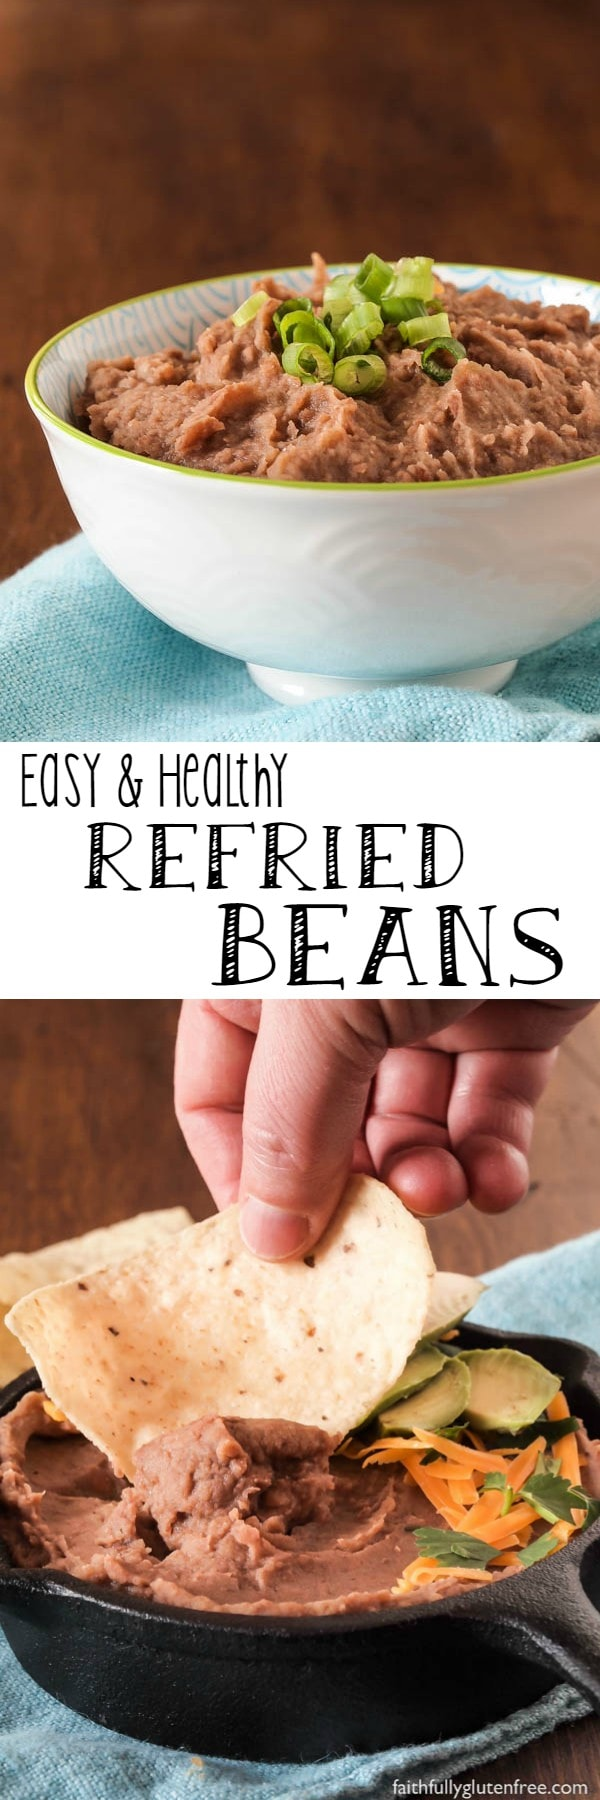 No Mexican meal is complete without a side of these healthy Refried Beans. Learn how easy it is to make your own delicious Refried Beans at home, better than anything you can get in a can, that's for sure!